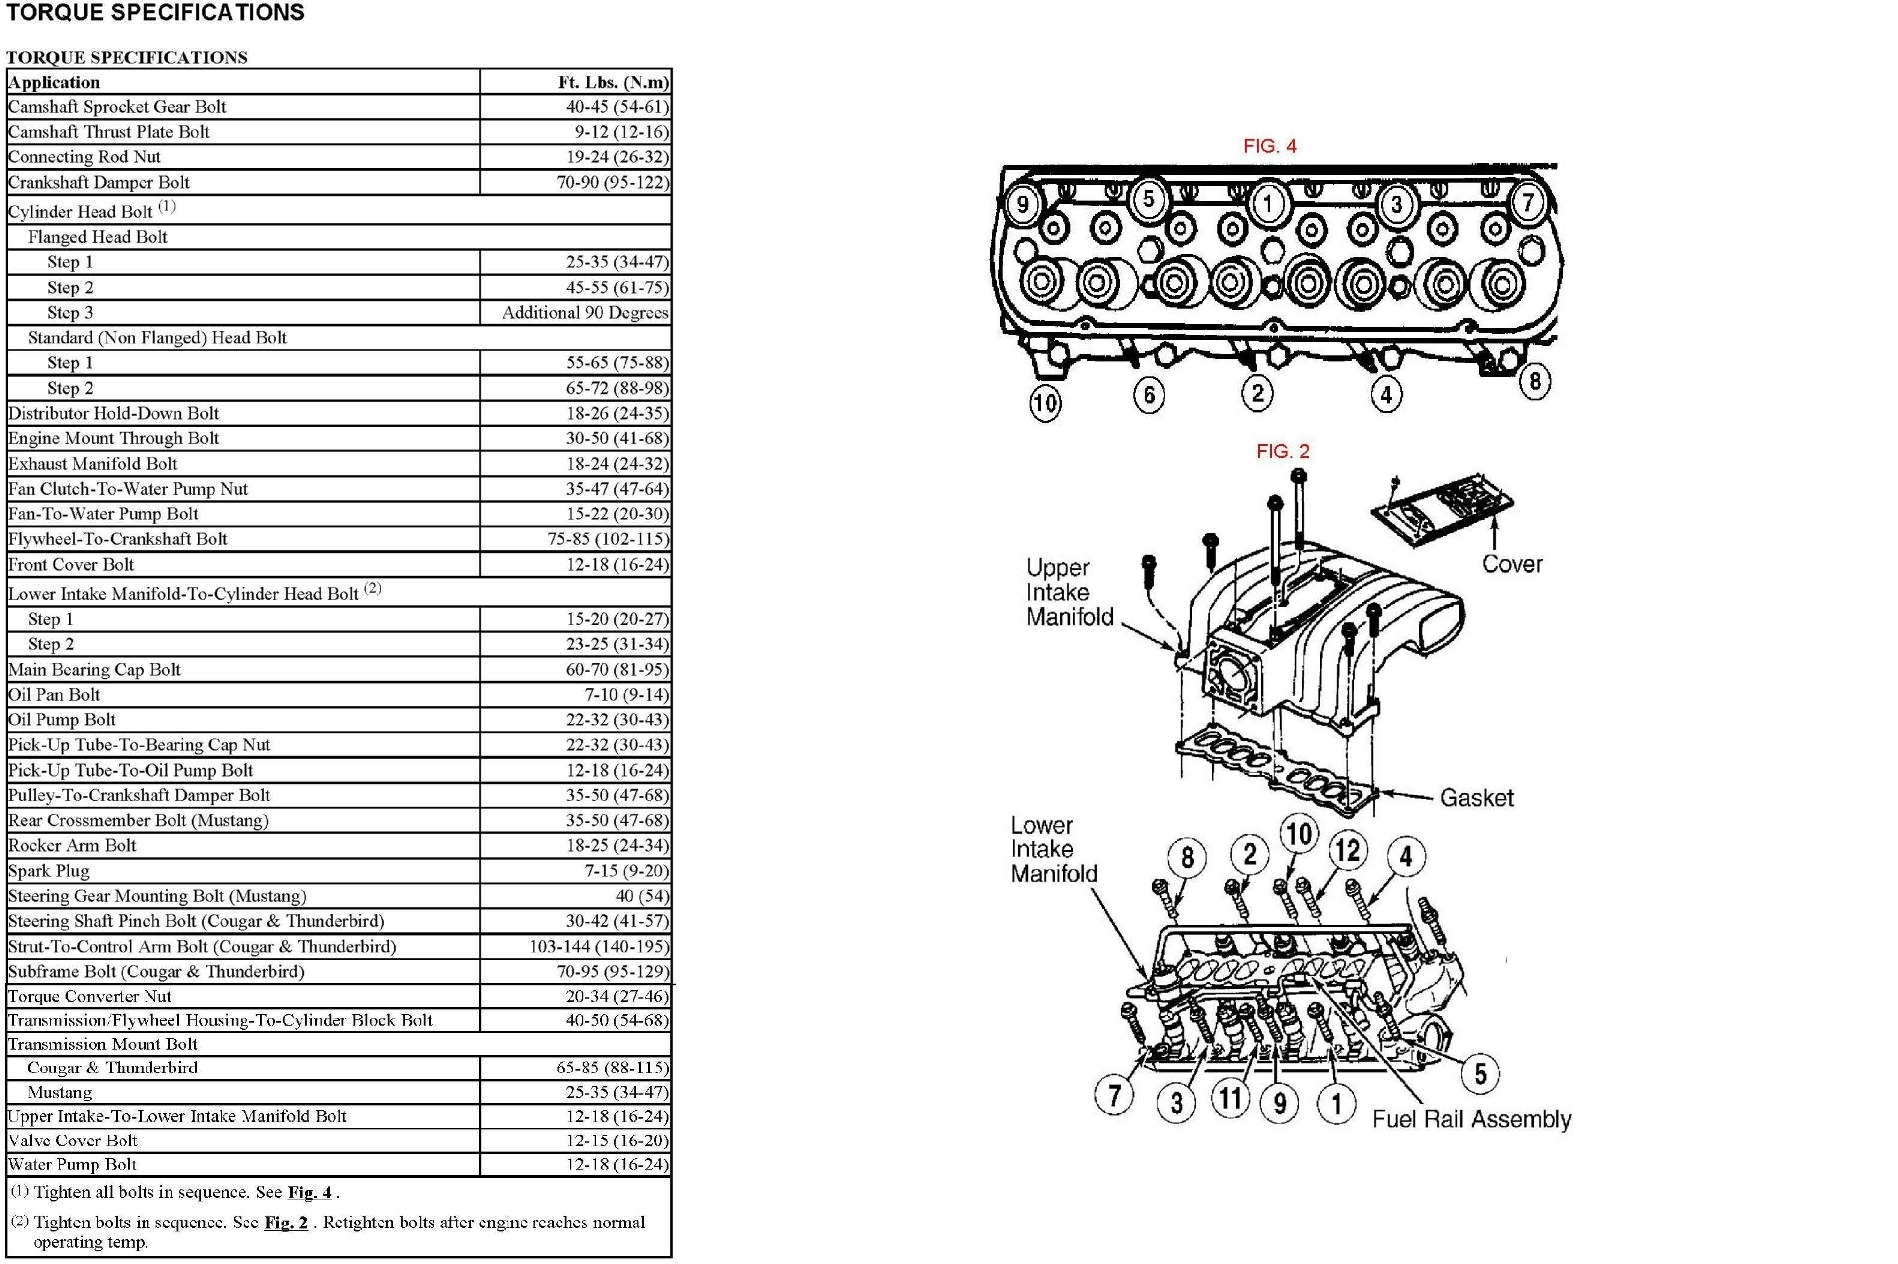 92 Ford Mustang Engine Diagram Worksheet And Wiring 1999 Ranger Everything You Need To Know About 1979 1993 Foxbody Mustangs Rh Americanmuscle Com 98 1995